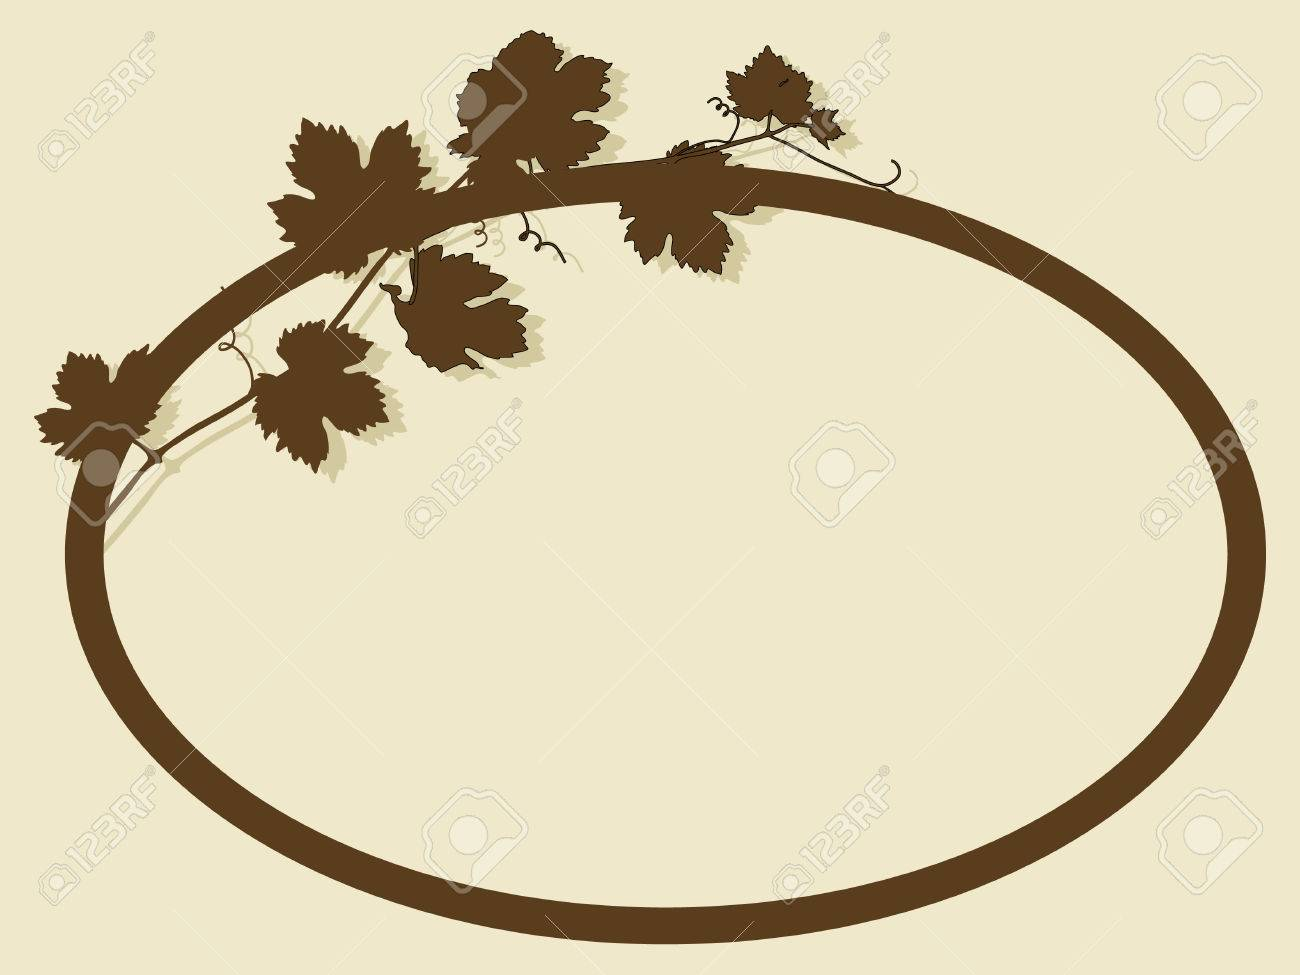 Oval frame with vine leaves Stock Vector - 7698274